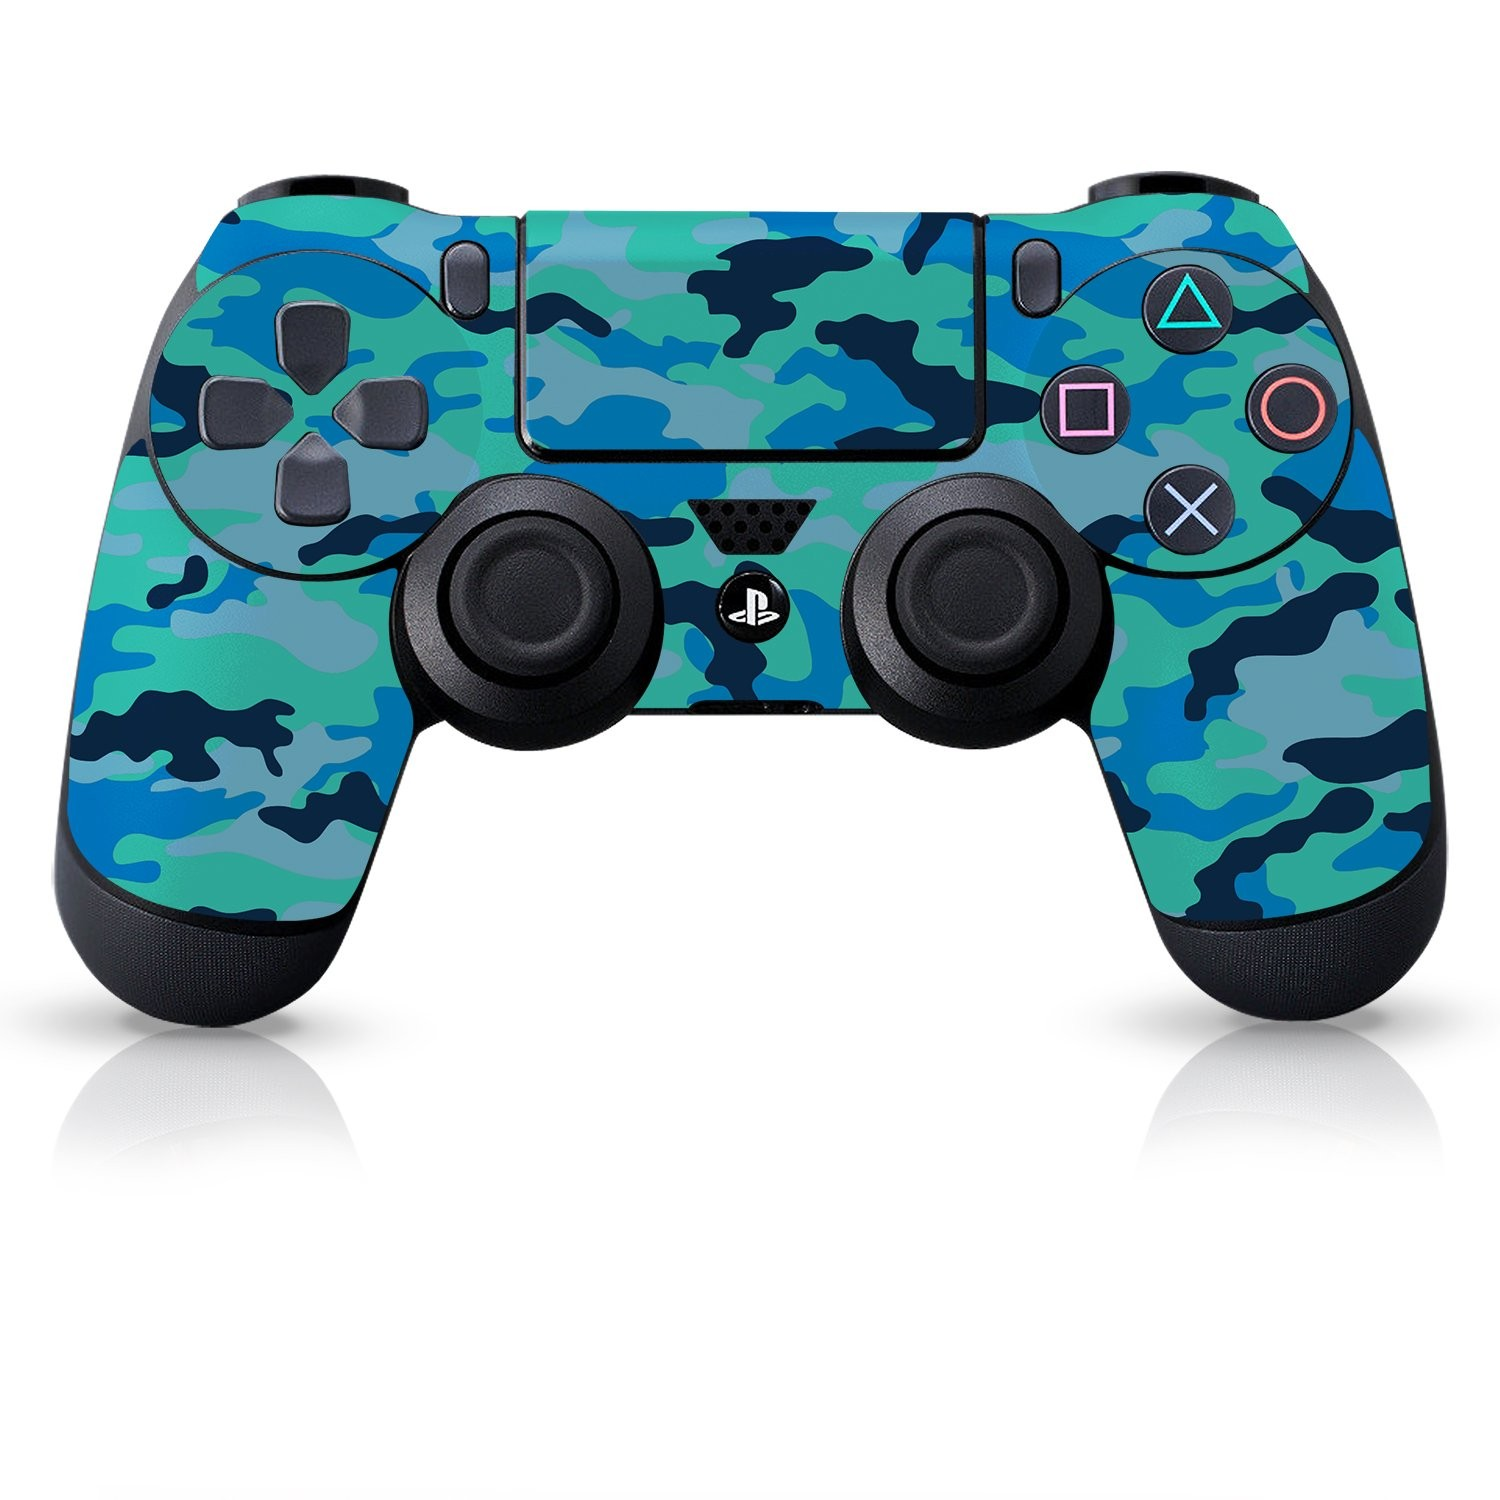 Officially Licensed Controller Skin - Seal Camo